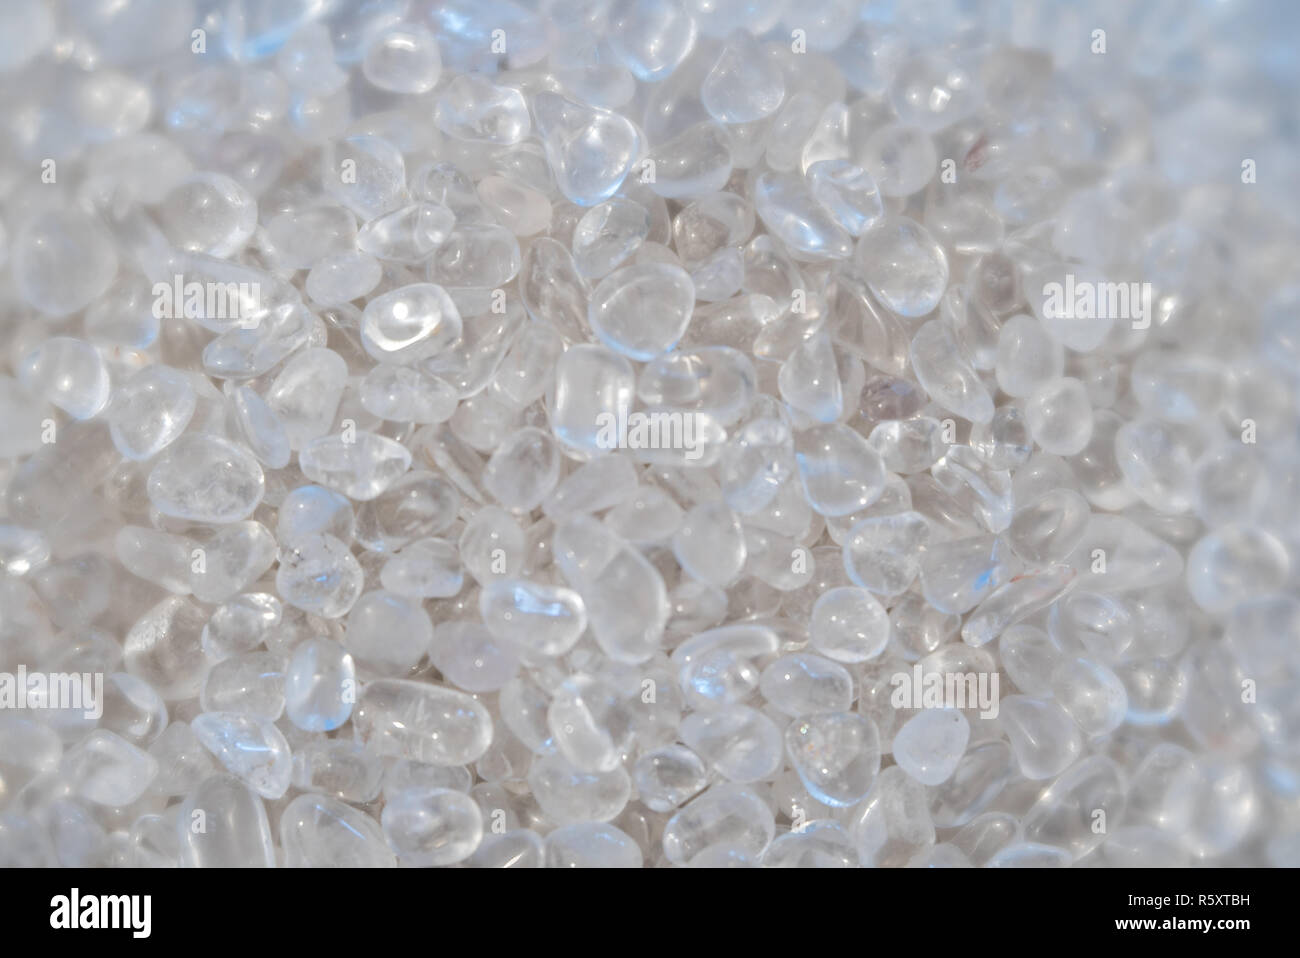 horizontal background of small polished quartz and rock crystal stones in a giant pile Stock Photo